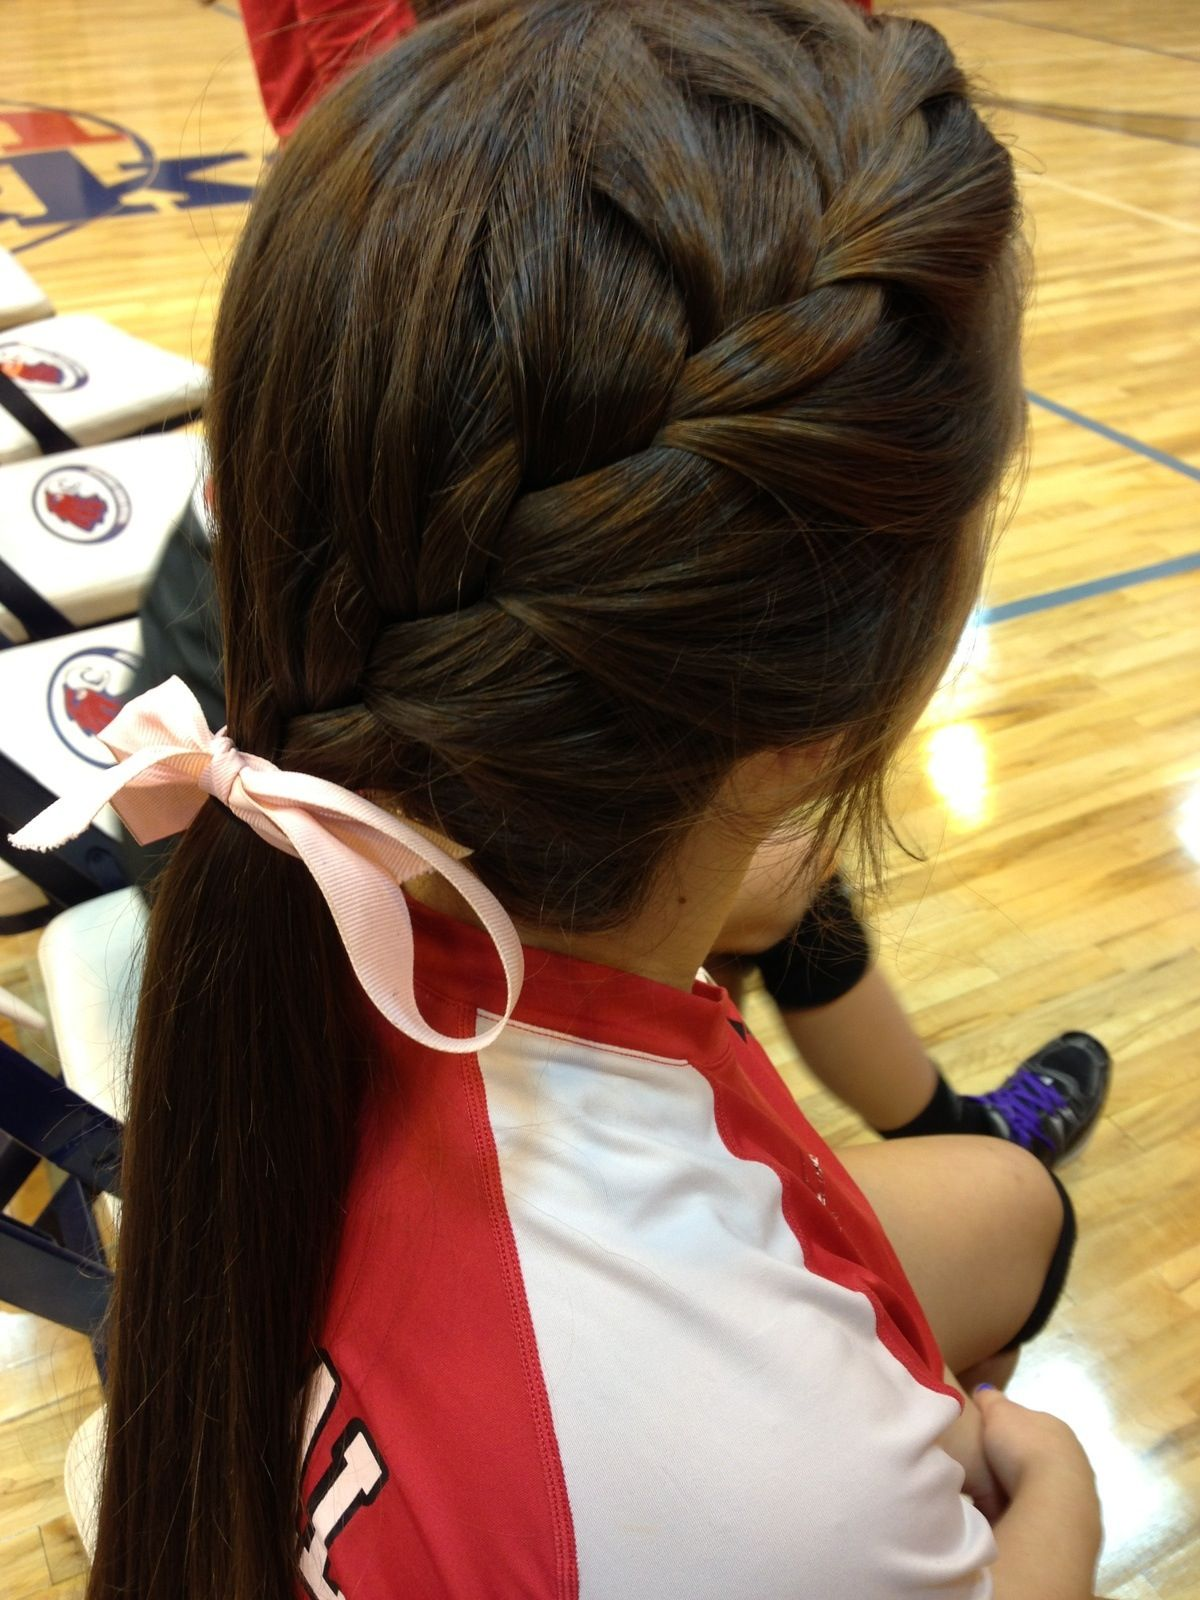 Volleyball Hair Idei Dlya Volos Pricheski Volosy